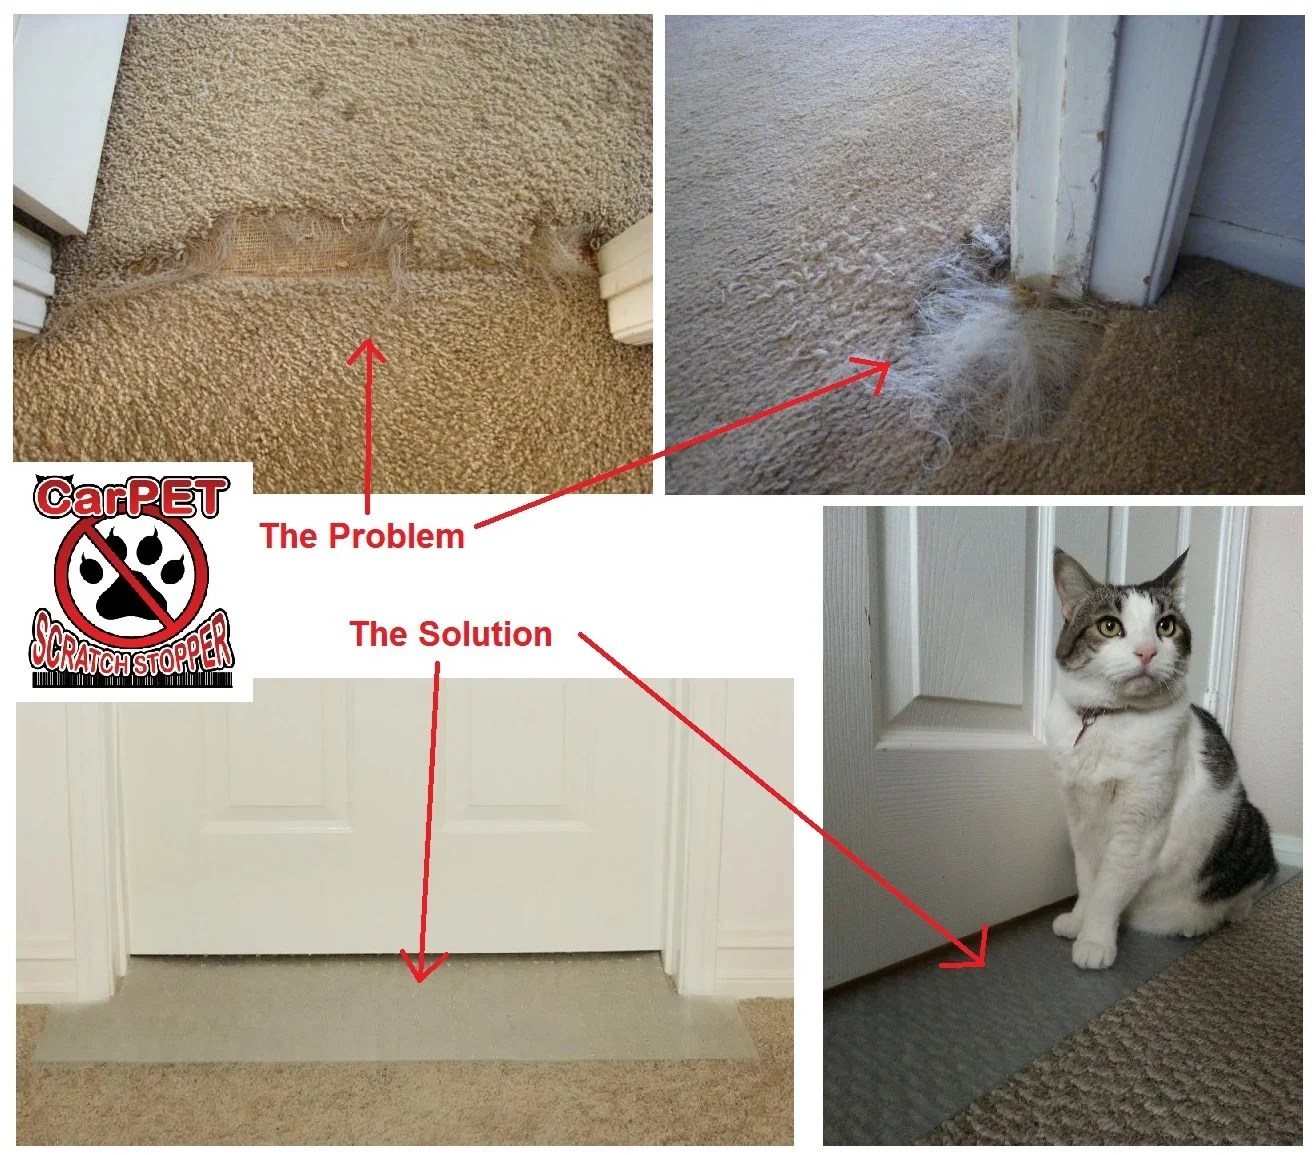 CarPET Scratch Stopper: Stop Cats from Scratching Carpet